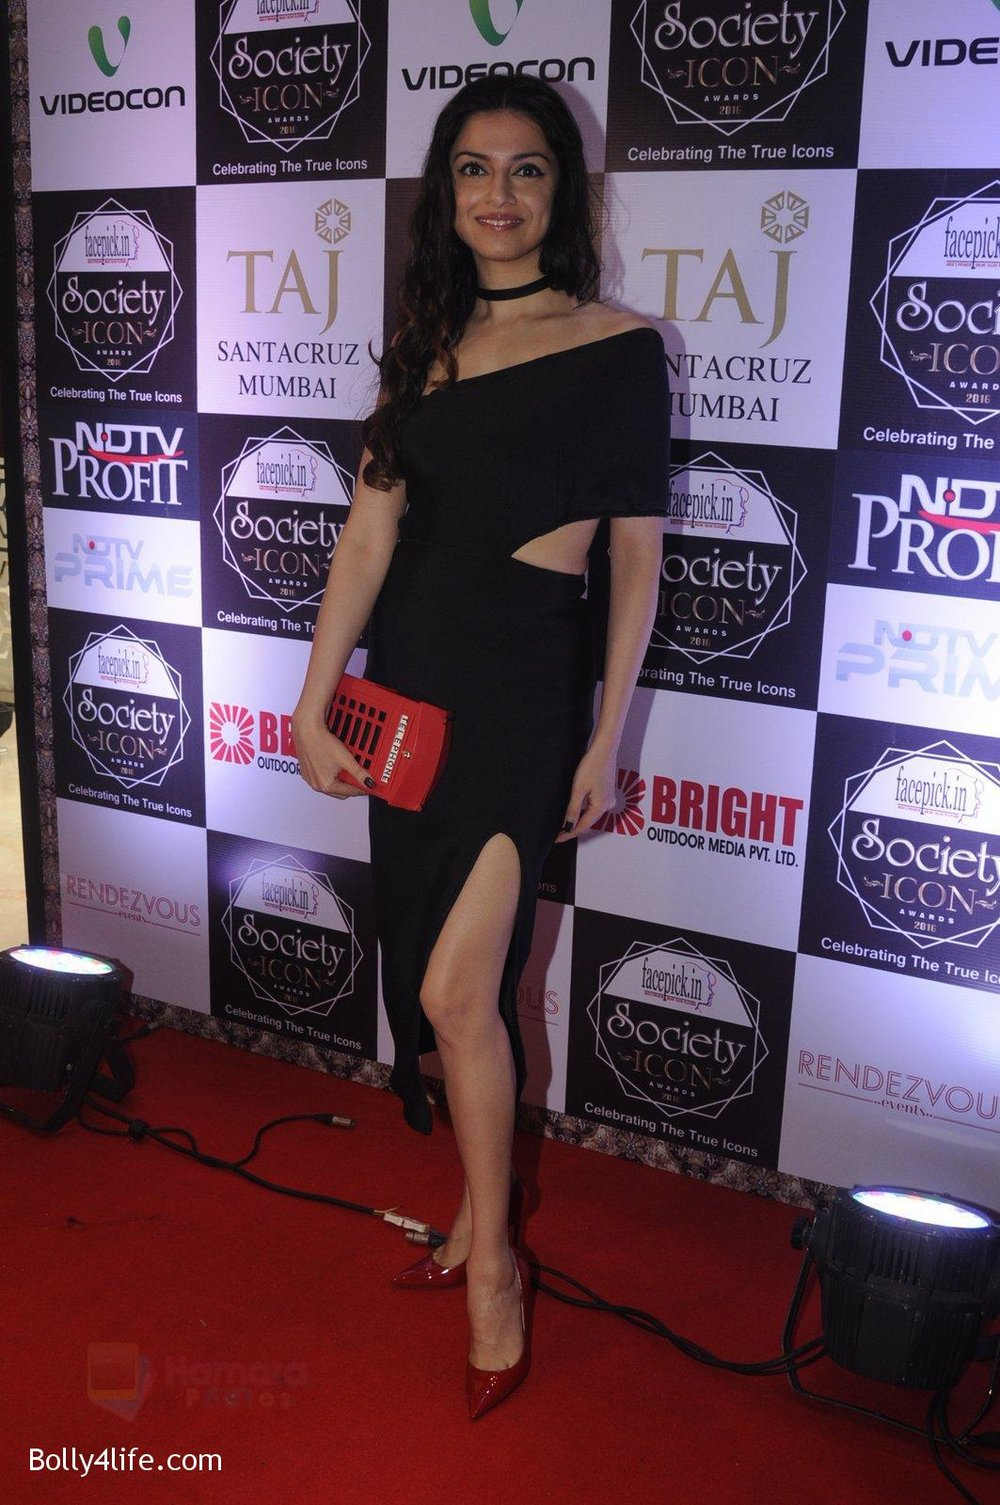 Divya-Kumar-at-Society-Icon-Awards-on-2nd-Oct-2016-54.jpg